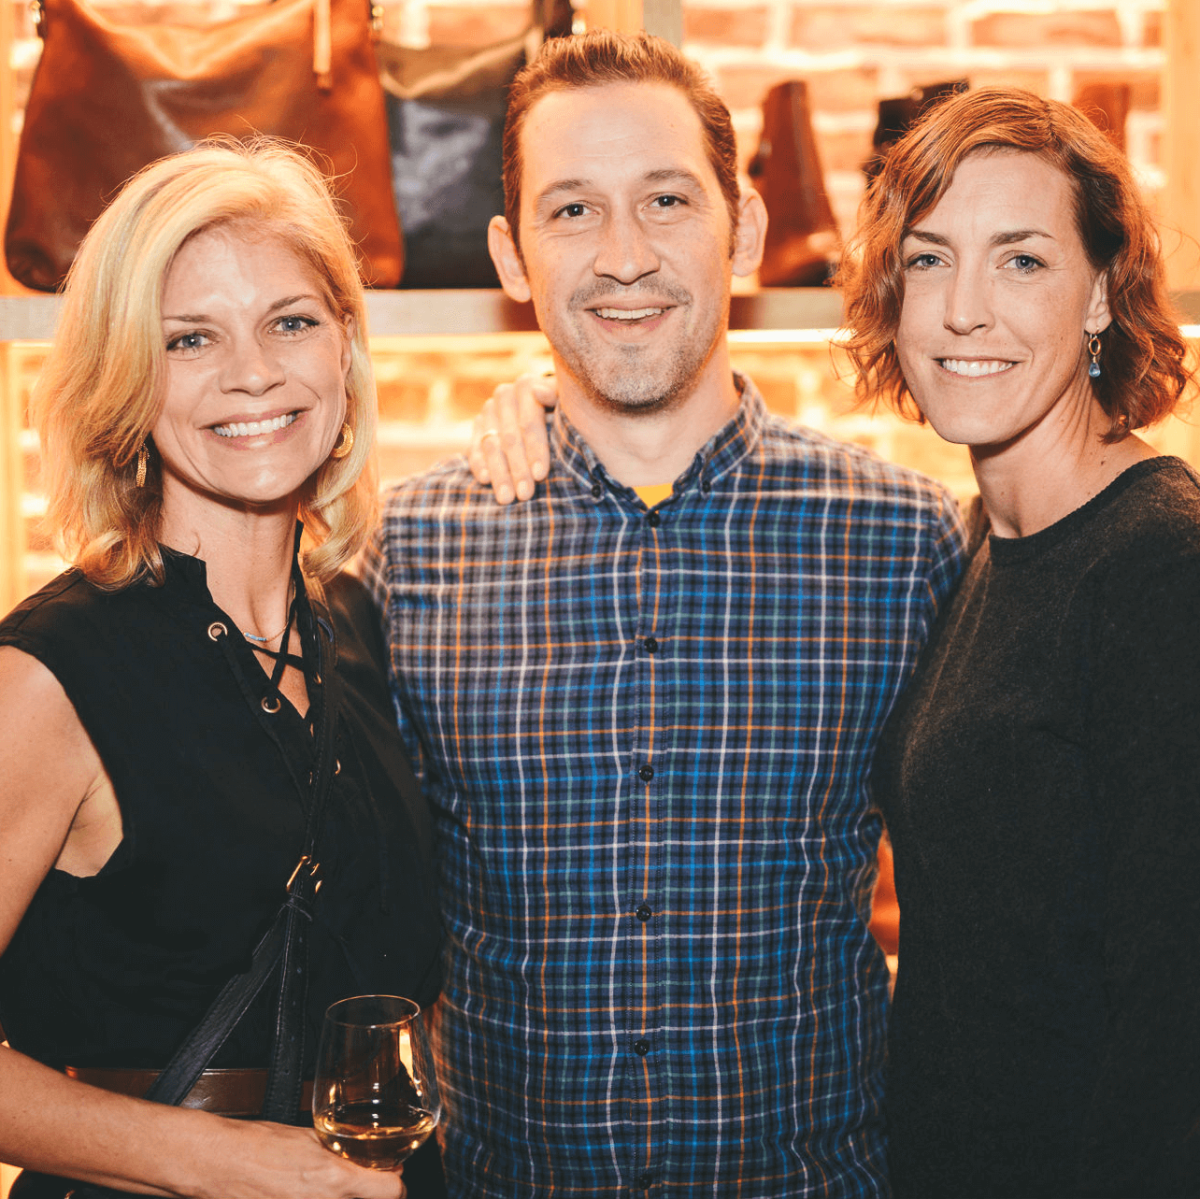 The Frye Company Austin grand opening 2016 Sam Davidson Todd Duplechan Jessica Maher